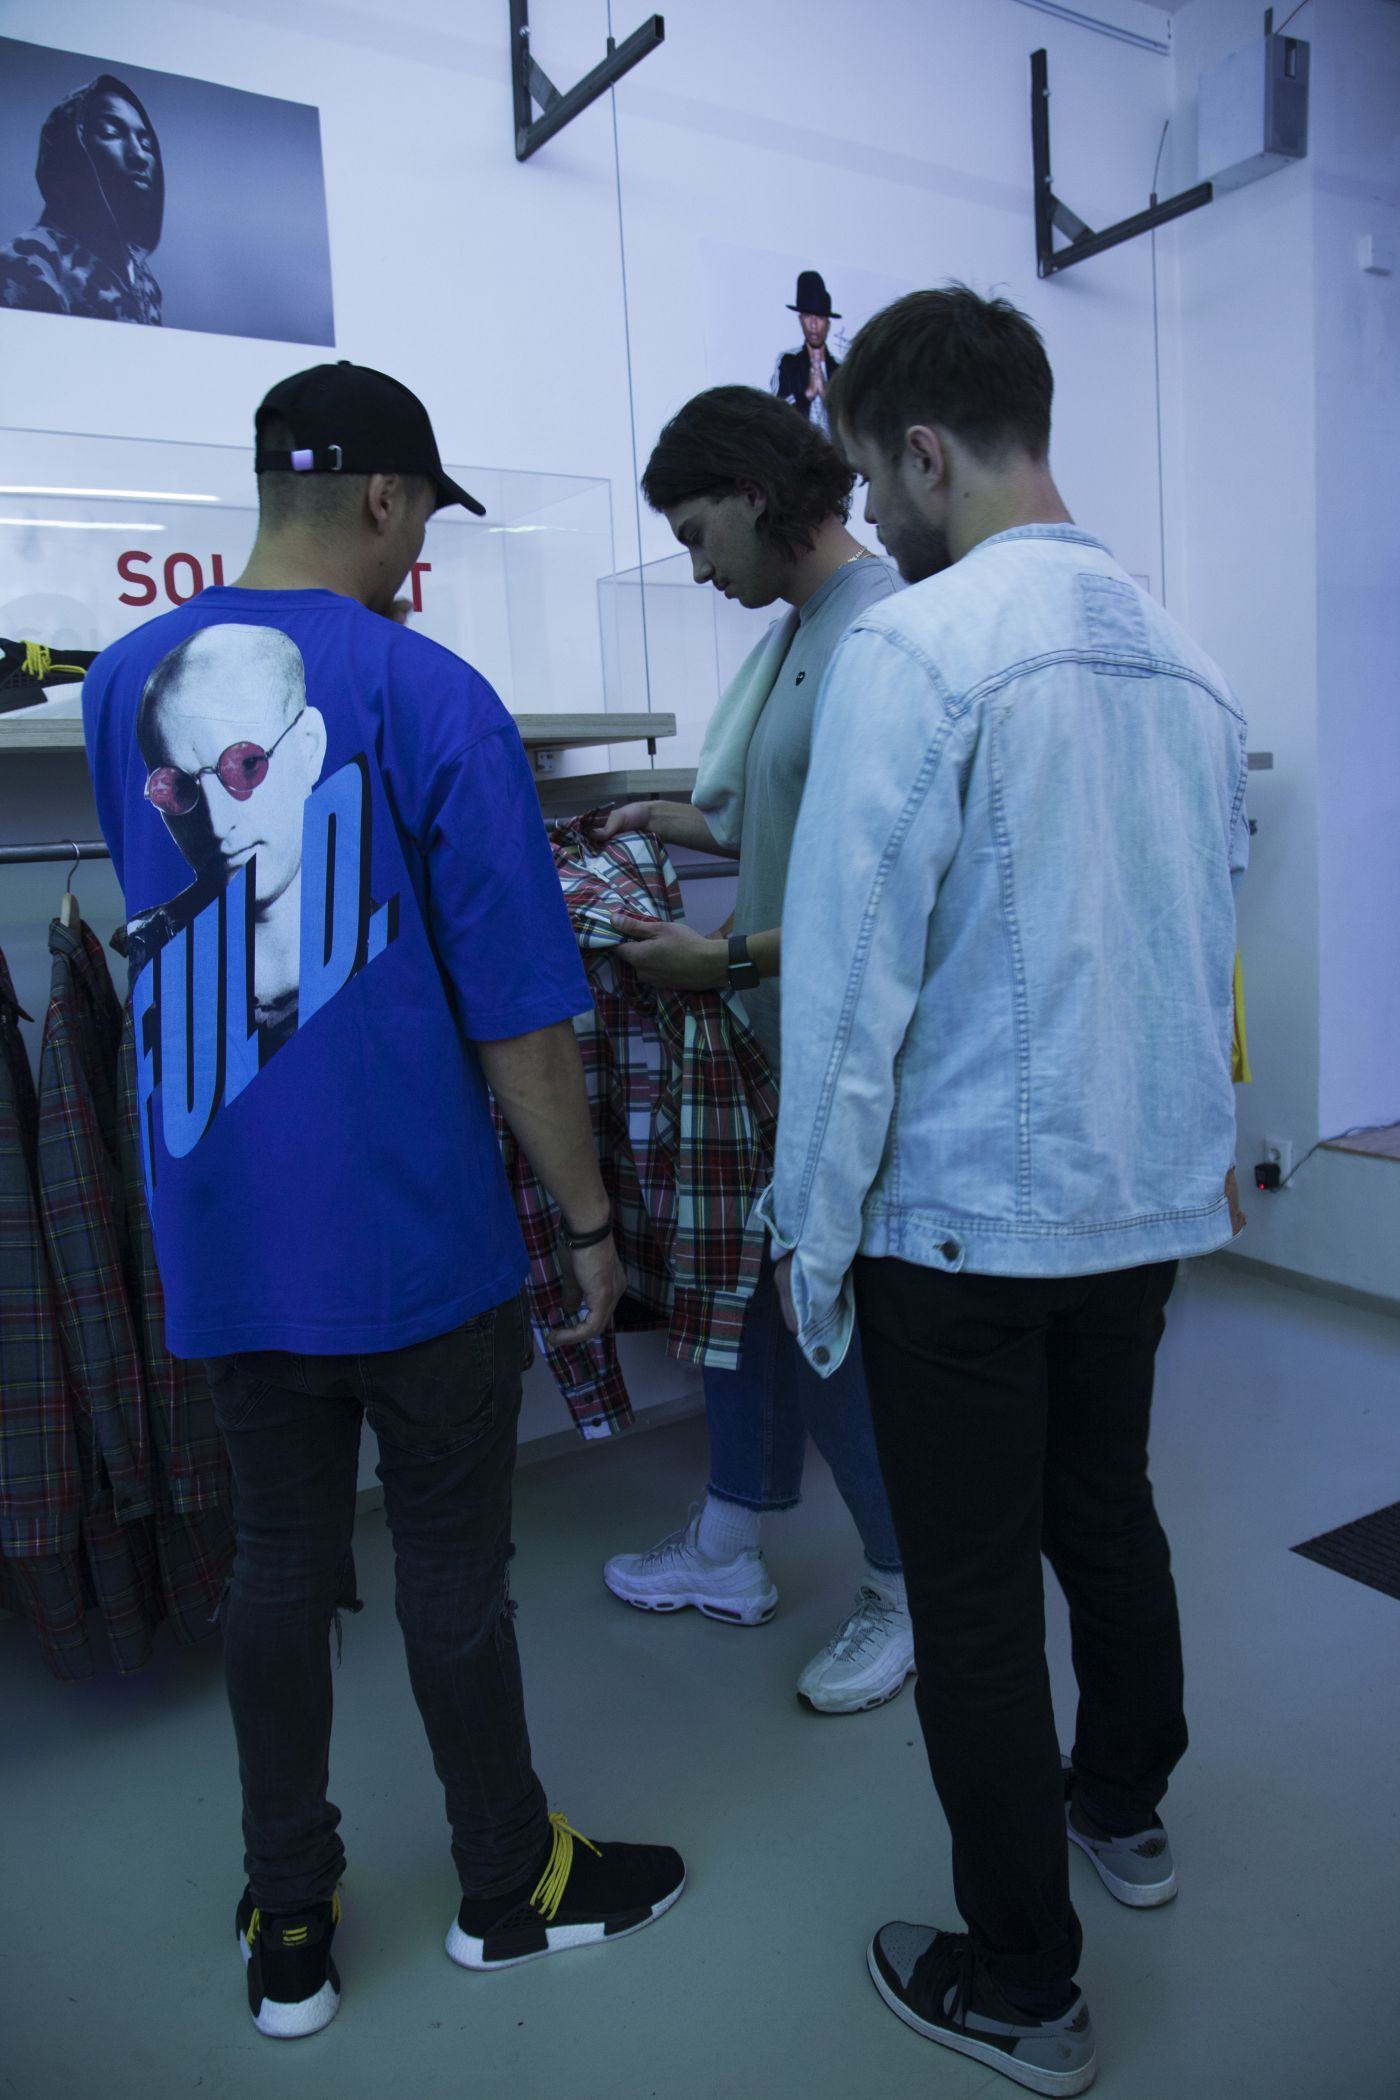 PAY. Clothing x Dalyb MLADOST | Fotoreport